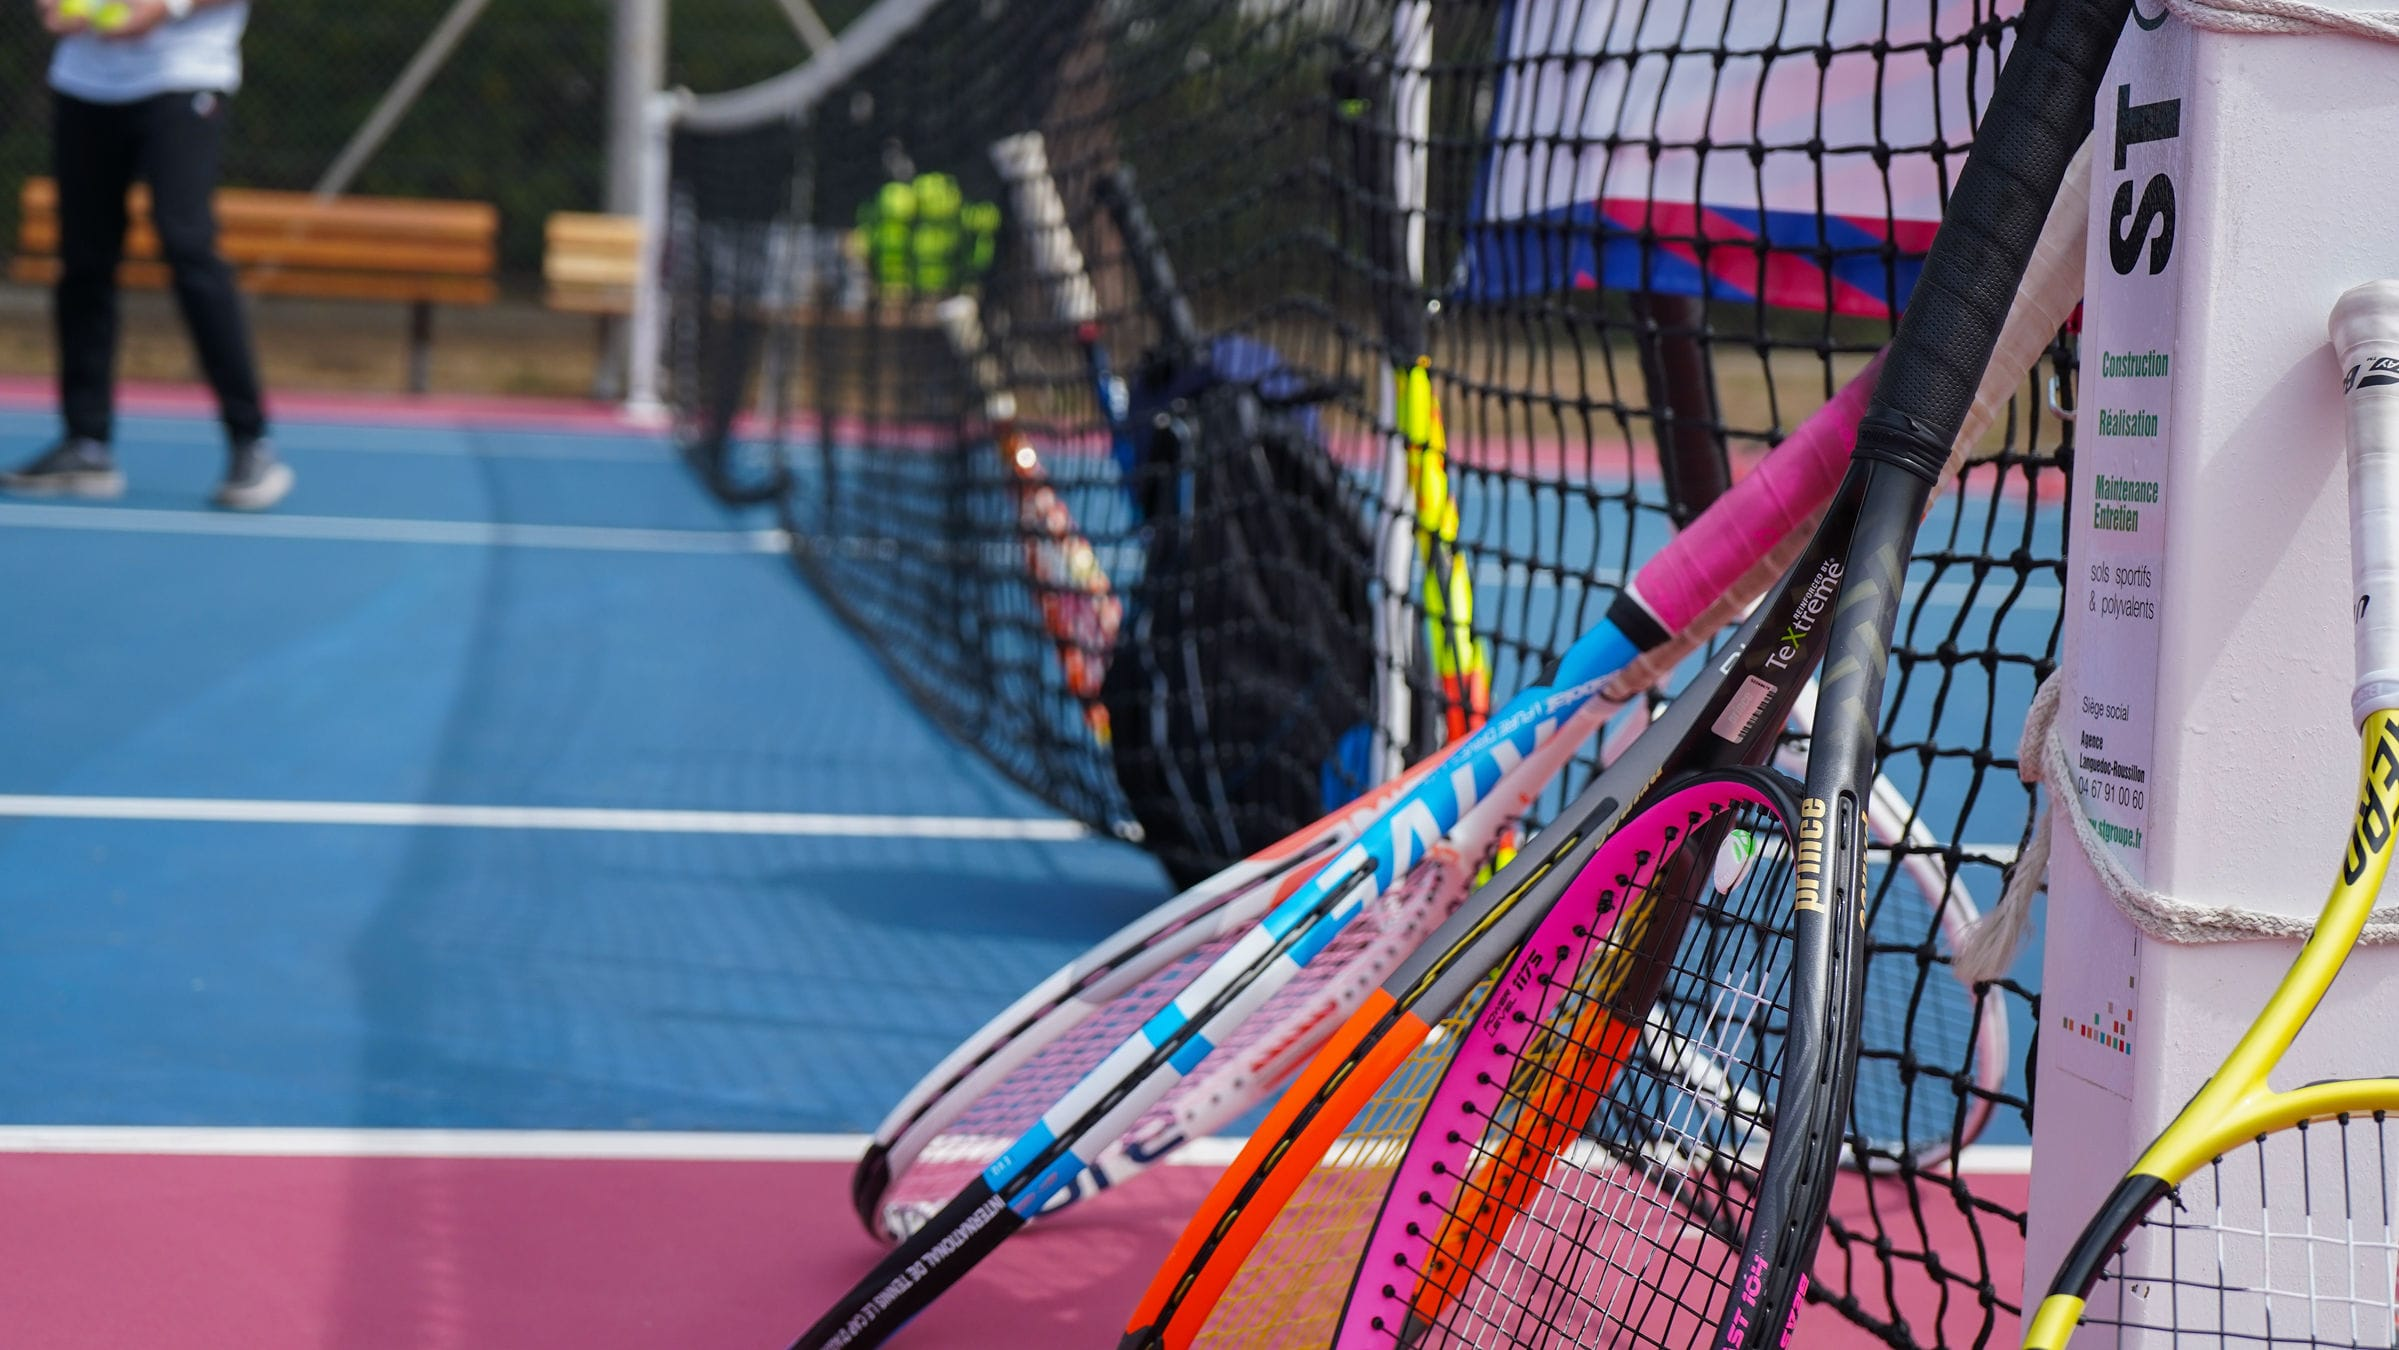 Tennis racquets on the tennis court